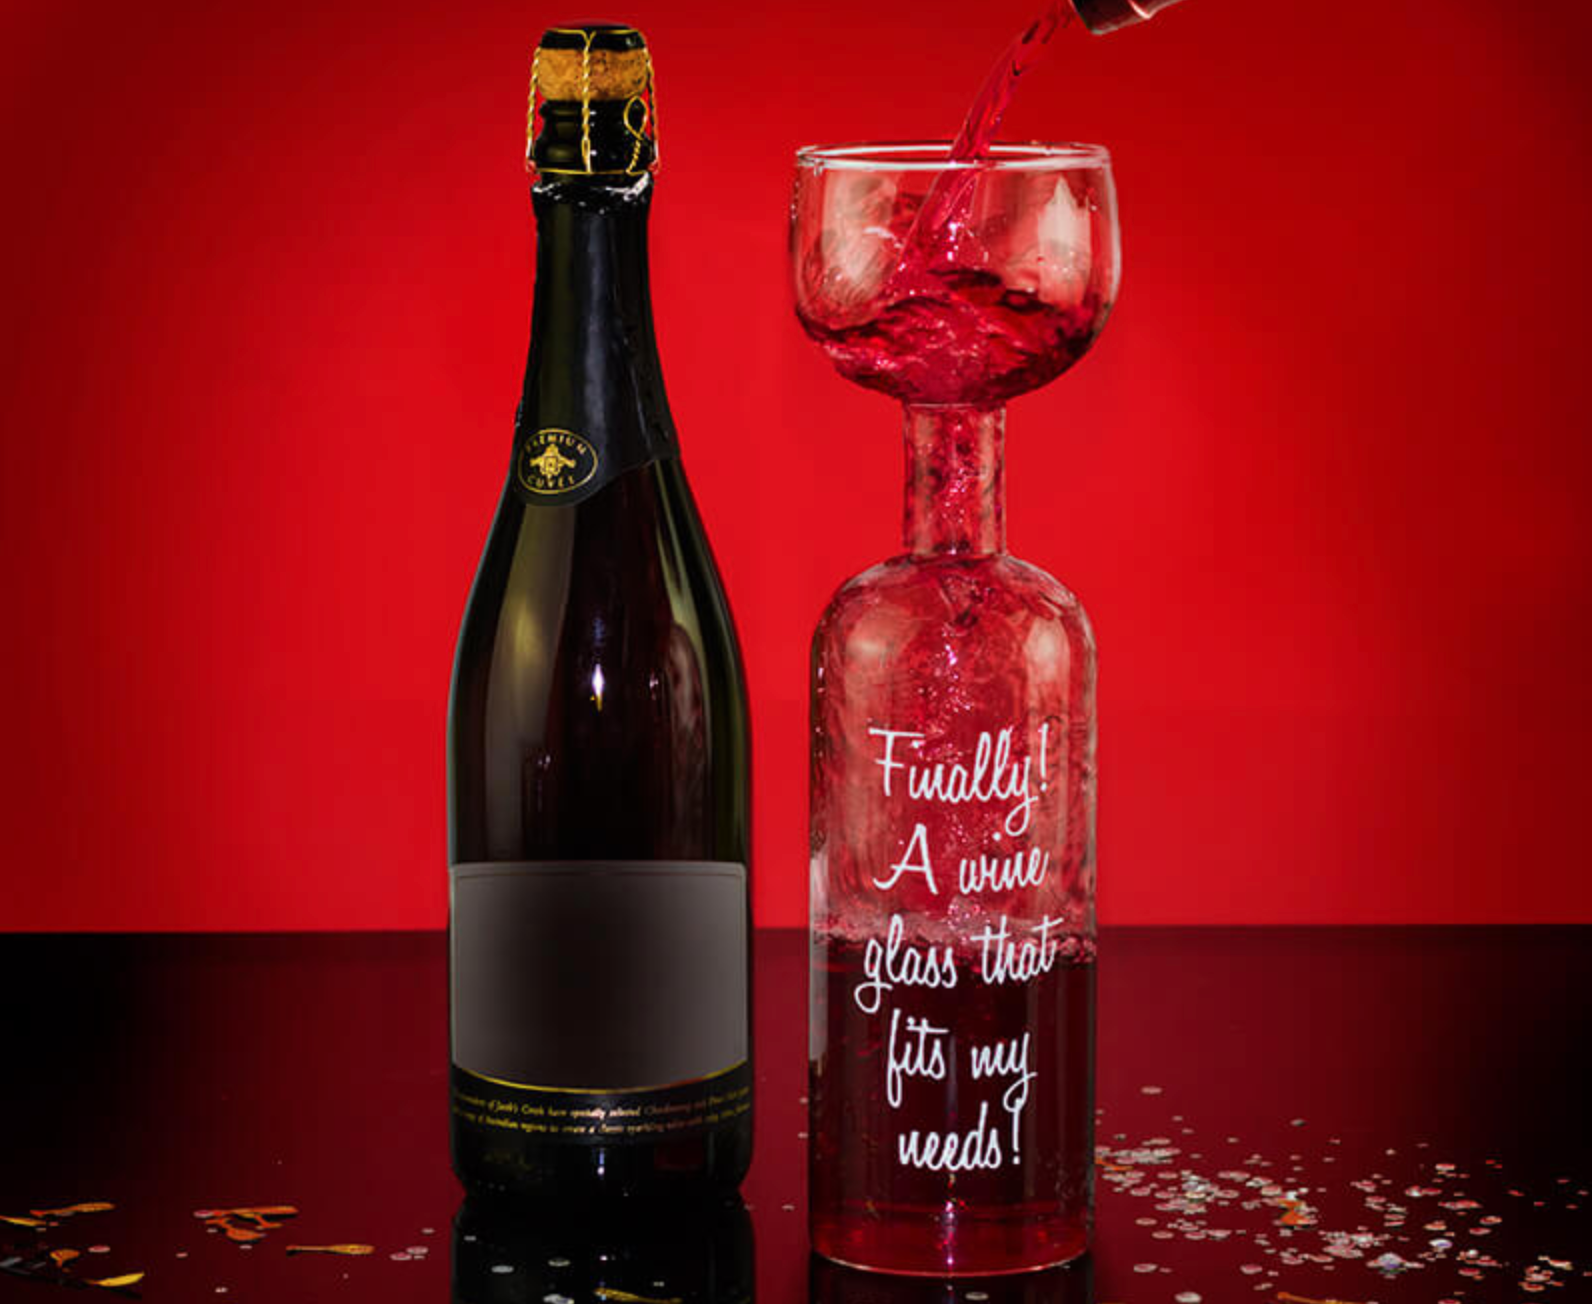 This 'wine bottle' glass is the perfect gift for those who only want one drink, The Manc